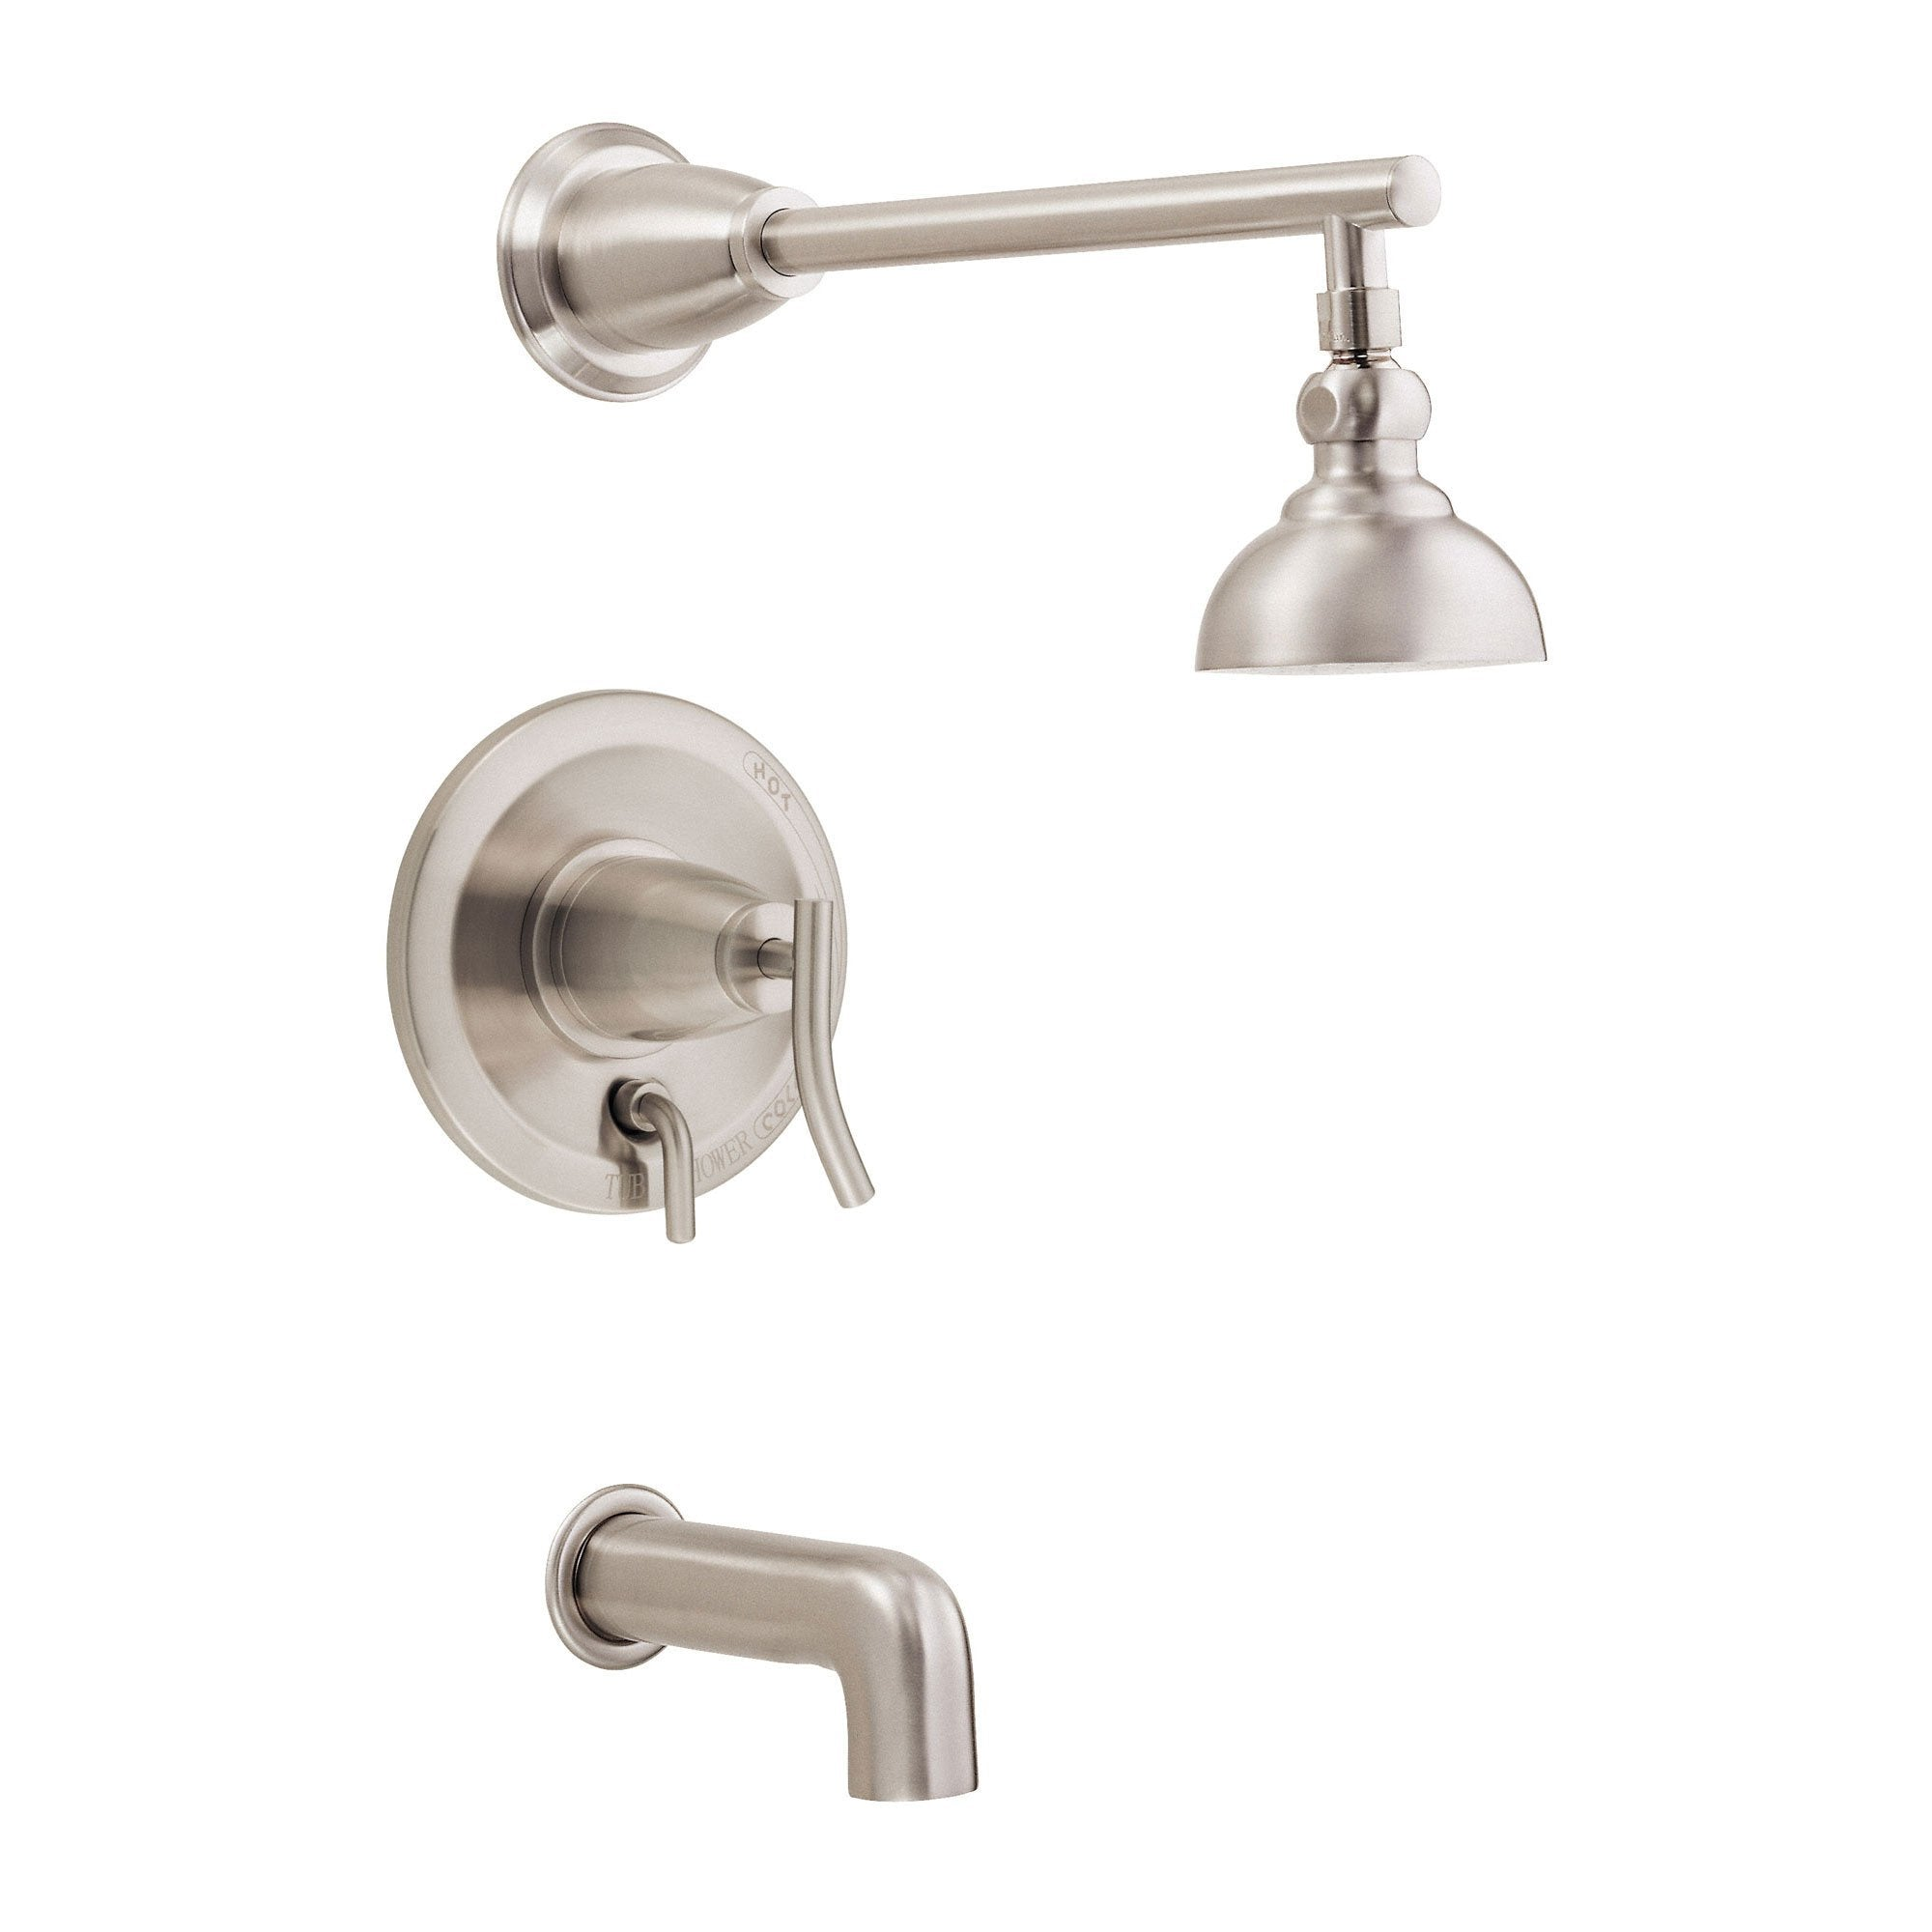 Danze Sonora Brushed Nickel Single Handle Tub and Shower Combo Faucet INCLUDES Rough-in Valve